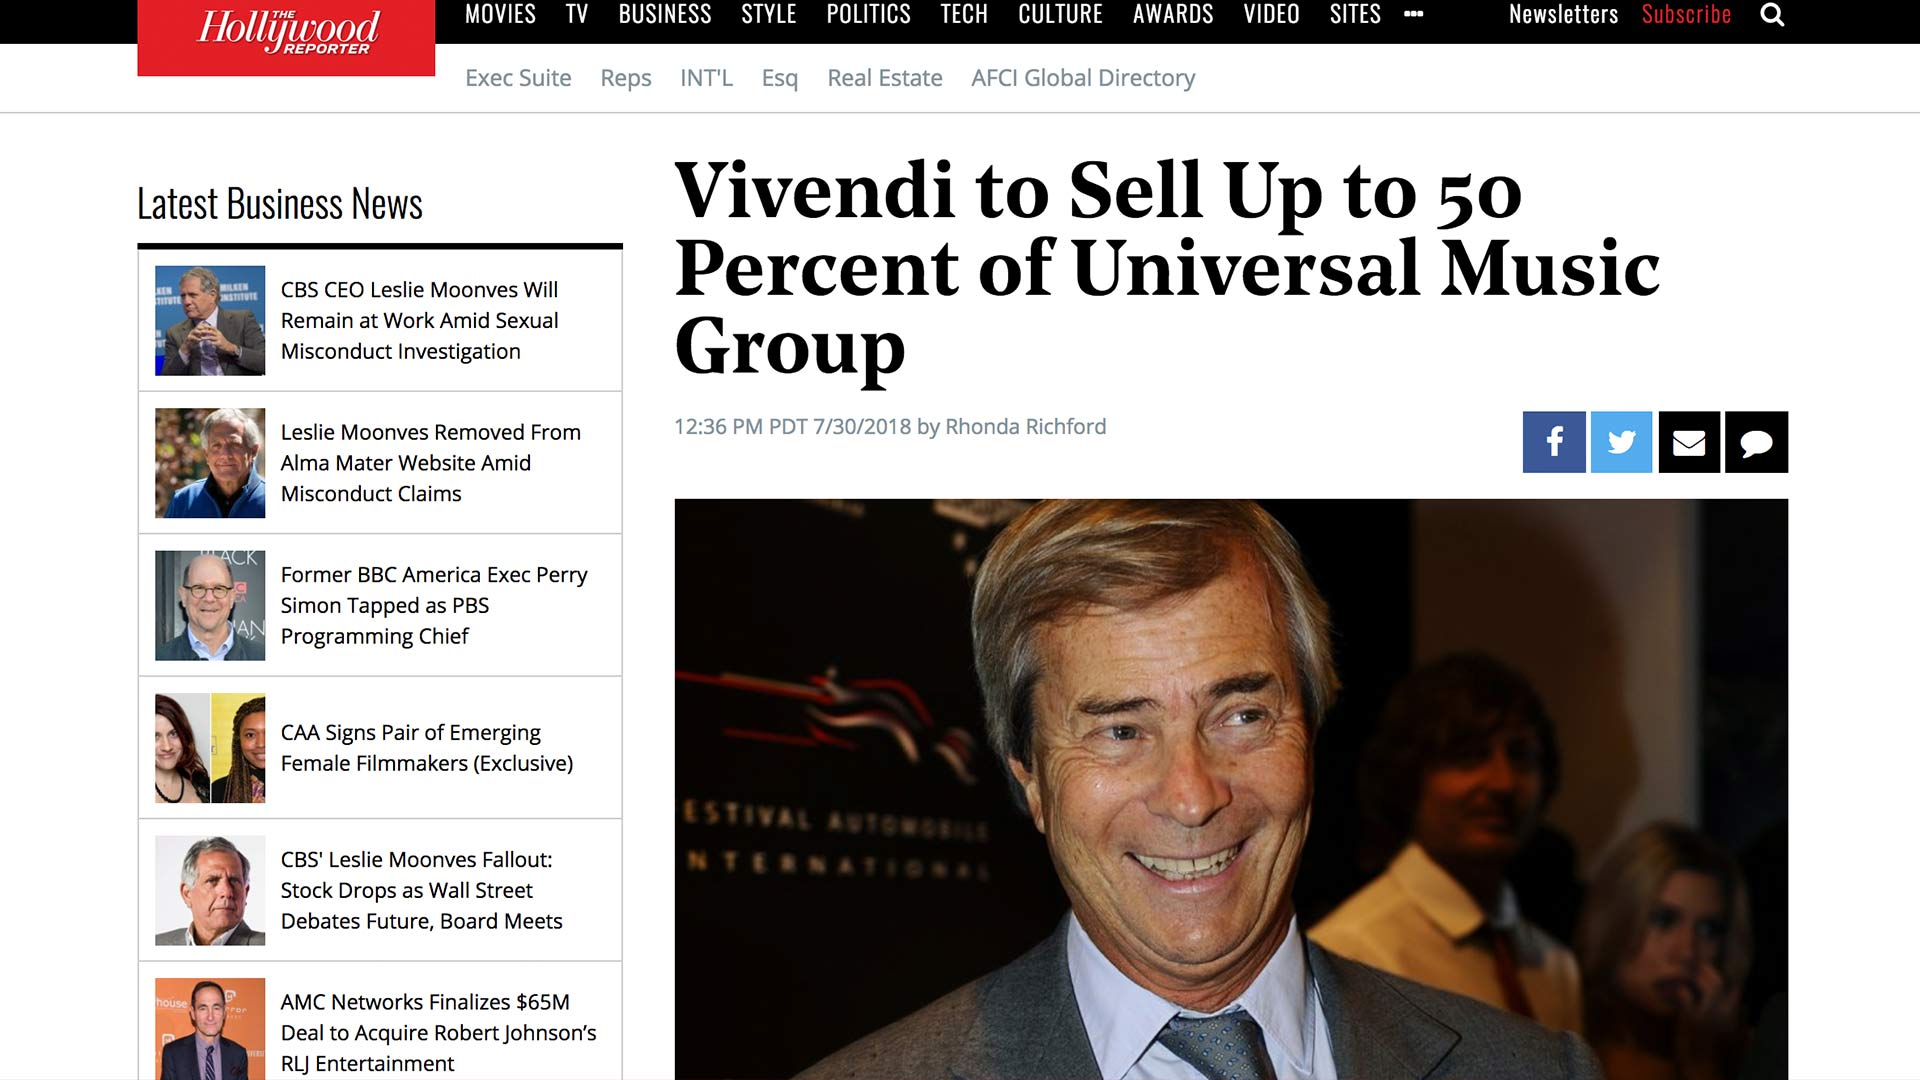 Fairness Rocks News Vivendi to Sell Up to 50 Percent of Universal Music Group